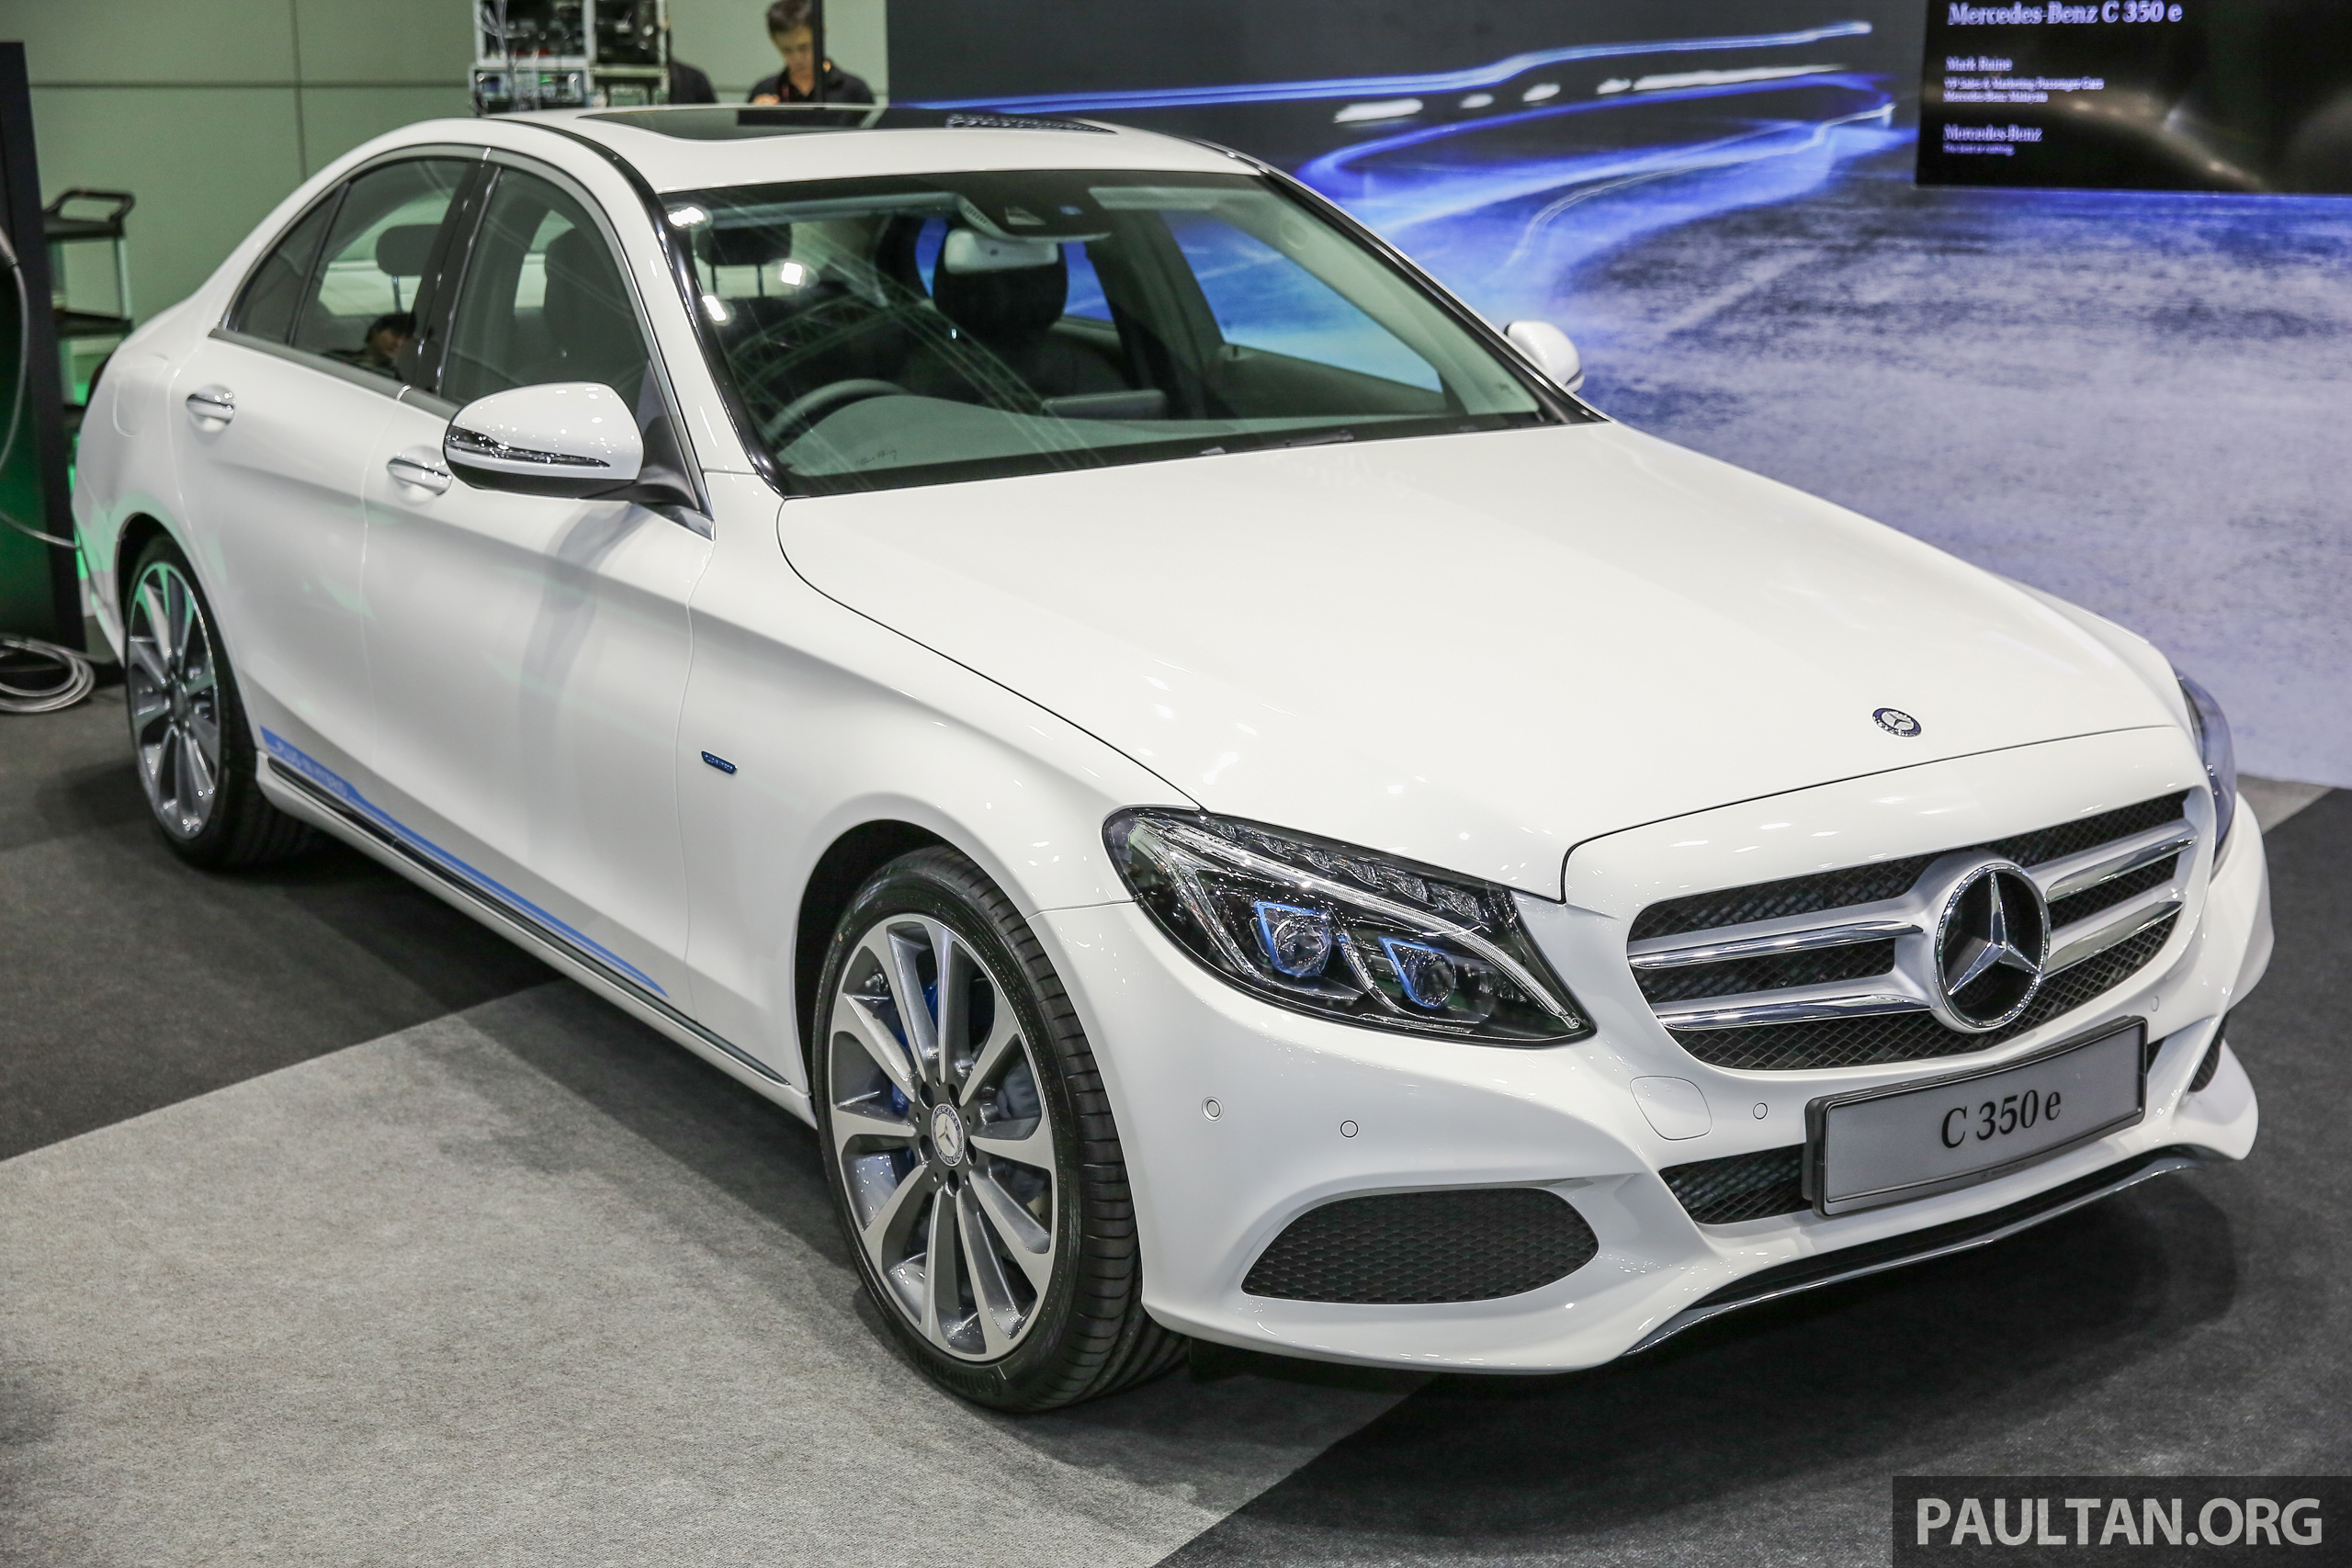 mercedes benz c350e plug in hybrid launched in malaysia three trim levels rm290k to rm300k. Black Bedroom Furniture Sets. Home Design Ideas